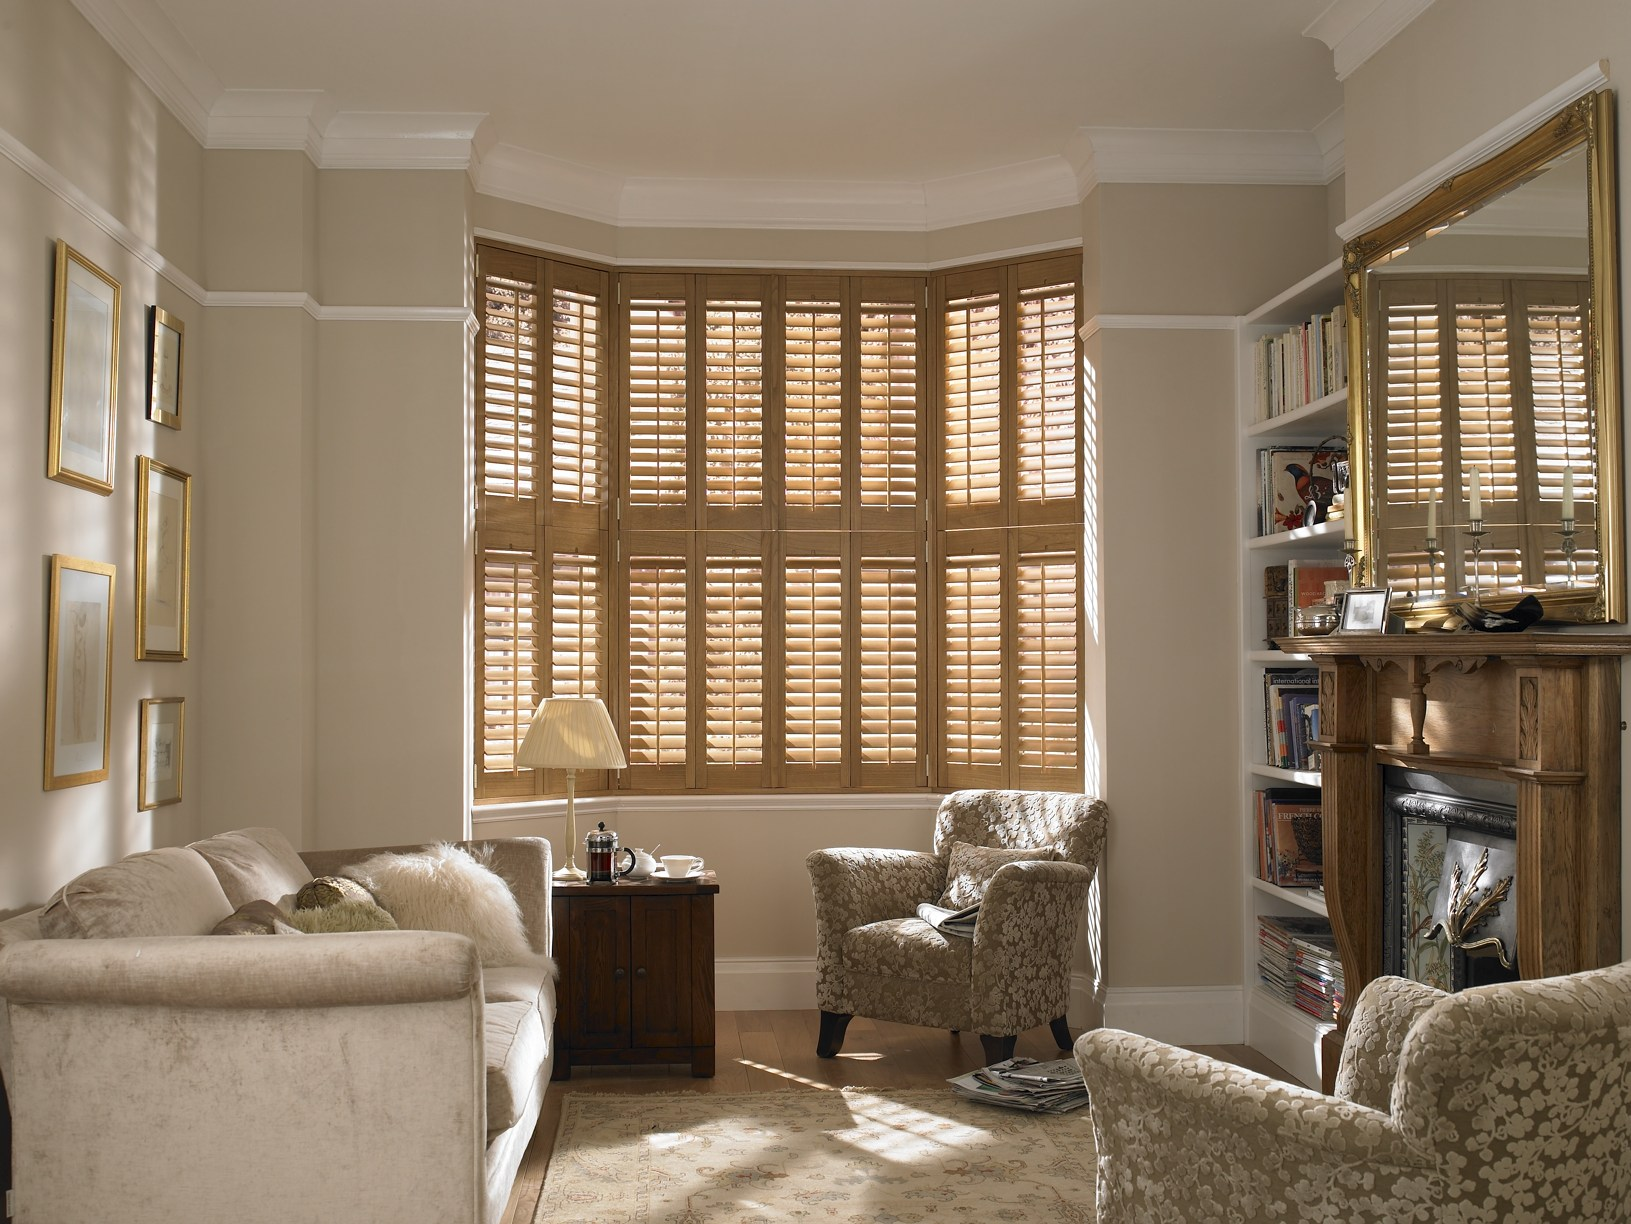 Going to britmums live courtesy of hillarys blinds for Venetian interior design ideas for your home